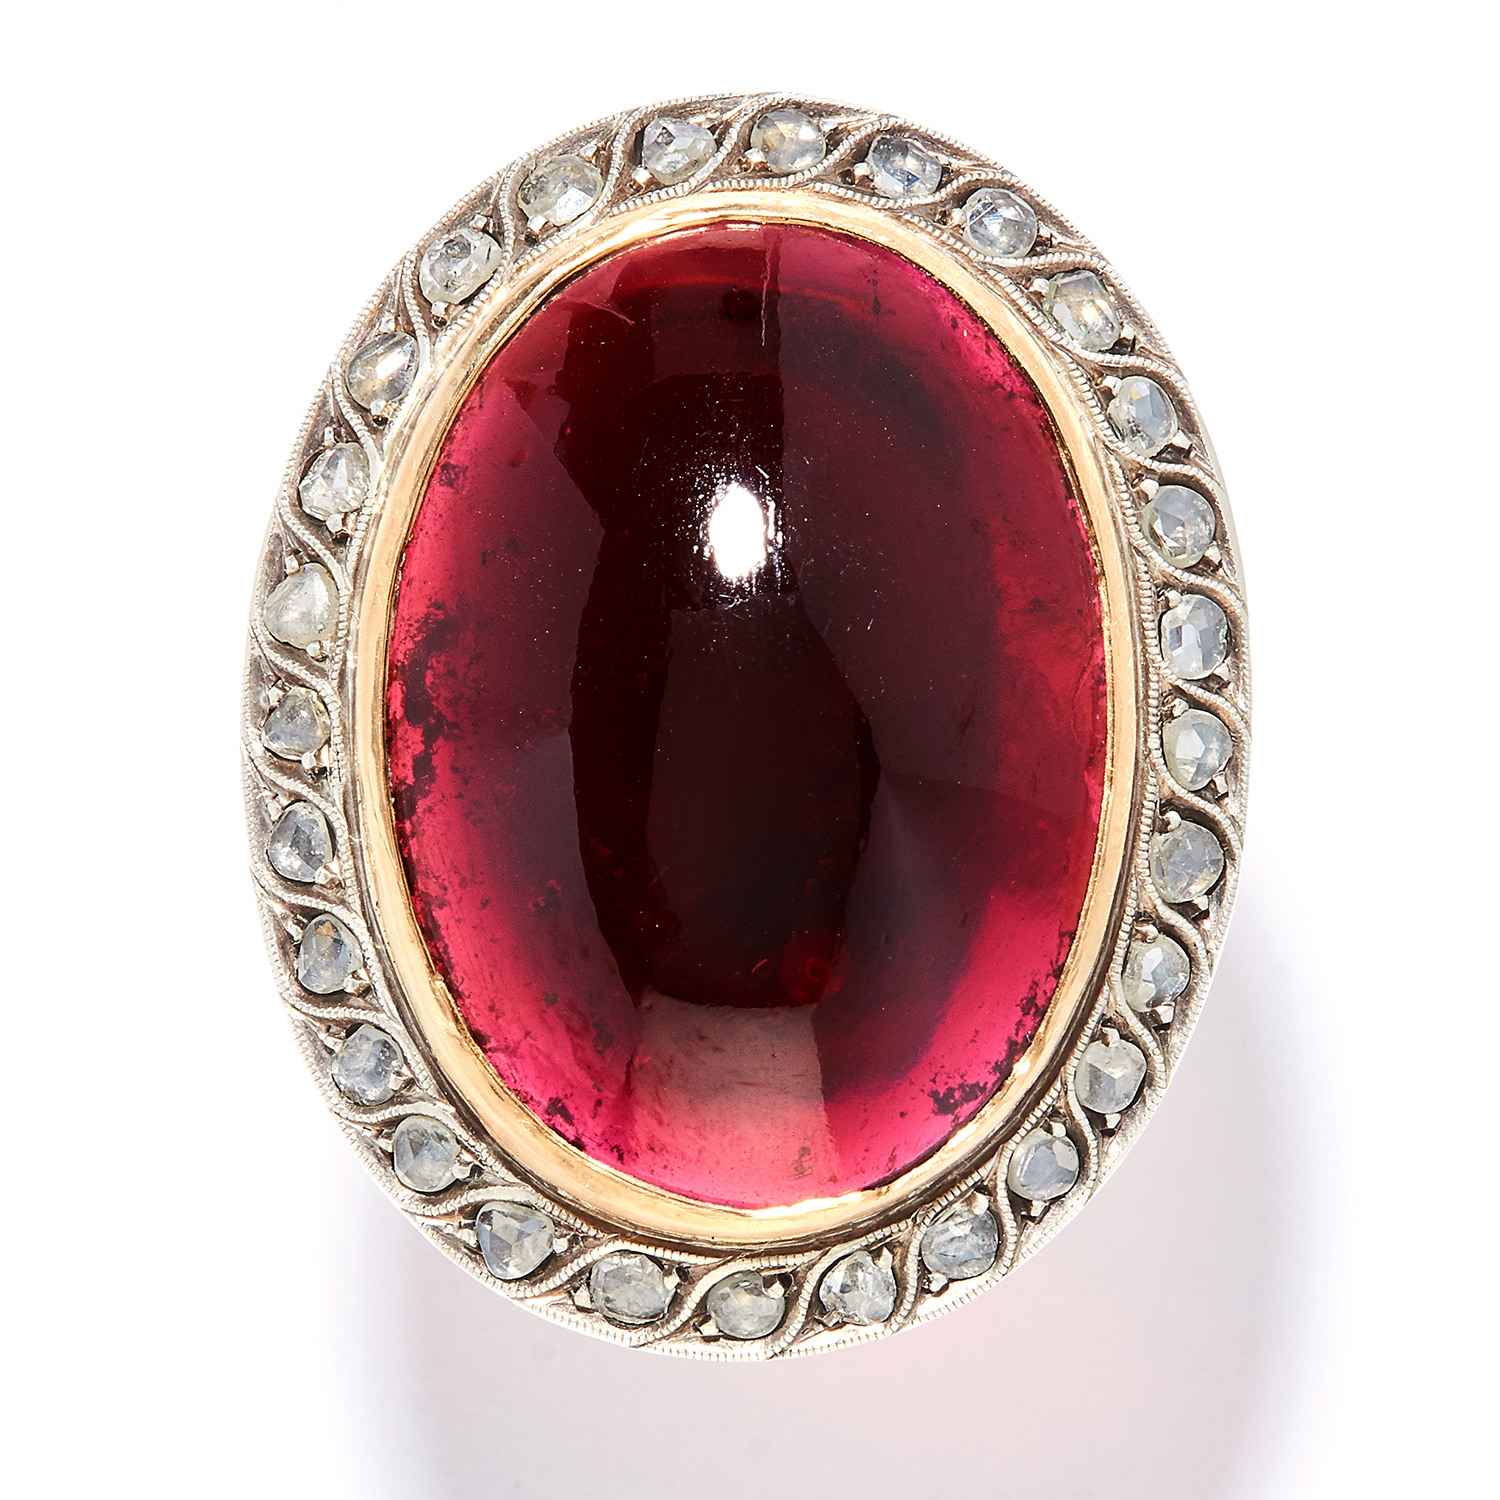 ANTIQUE GARNET AND DIAMOND RING in high carat yellow gold and silver, the large oval cabochon garnet